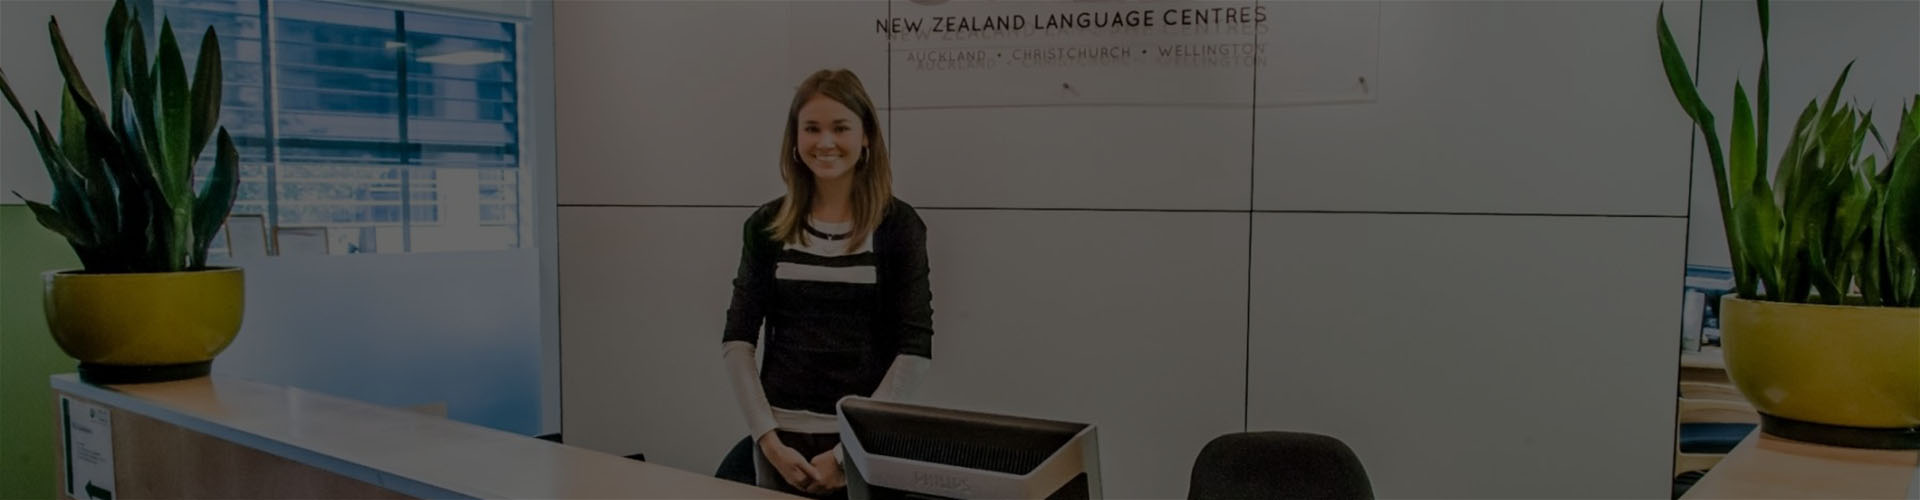 NZLC (New Zealand Language Center) Слайд